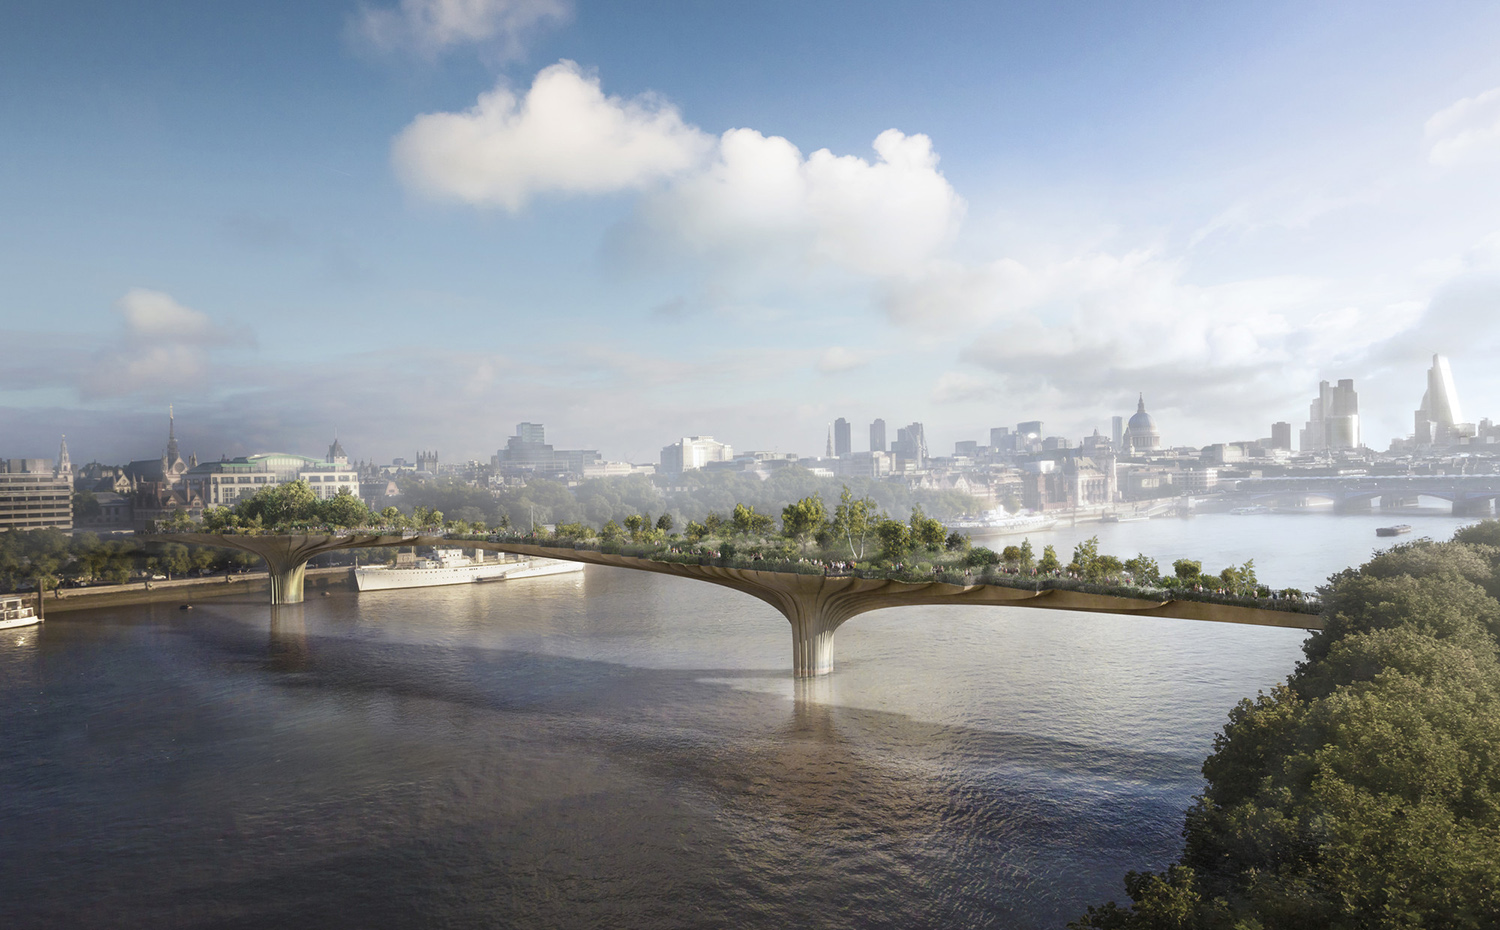 816  01 HR GardenBridge CREDIT Arup. Proyecto Garden Bridge en Londres, de Thomas Heatherwick